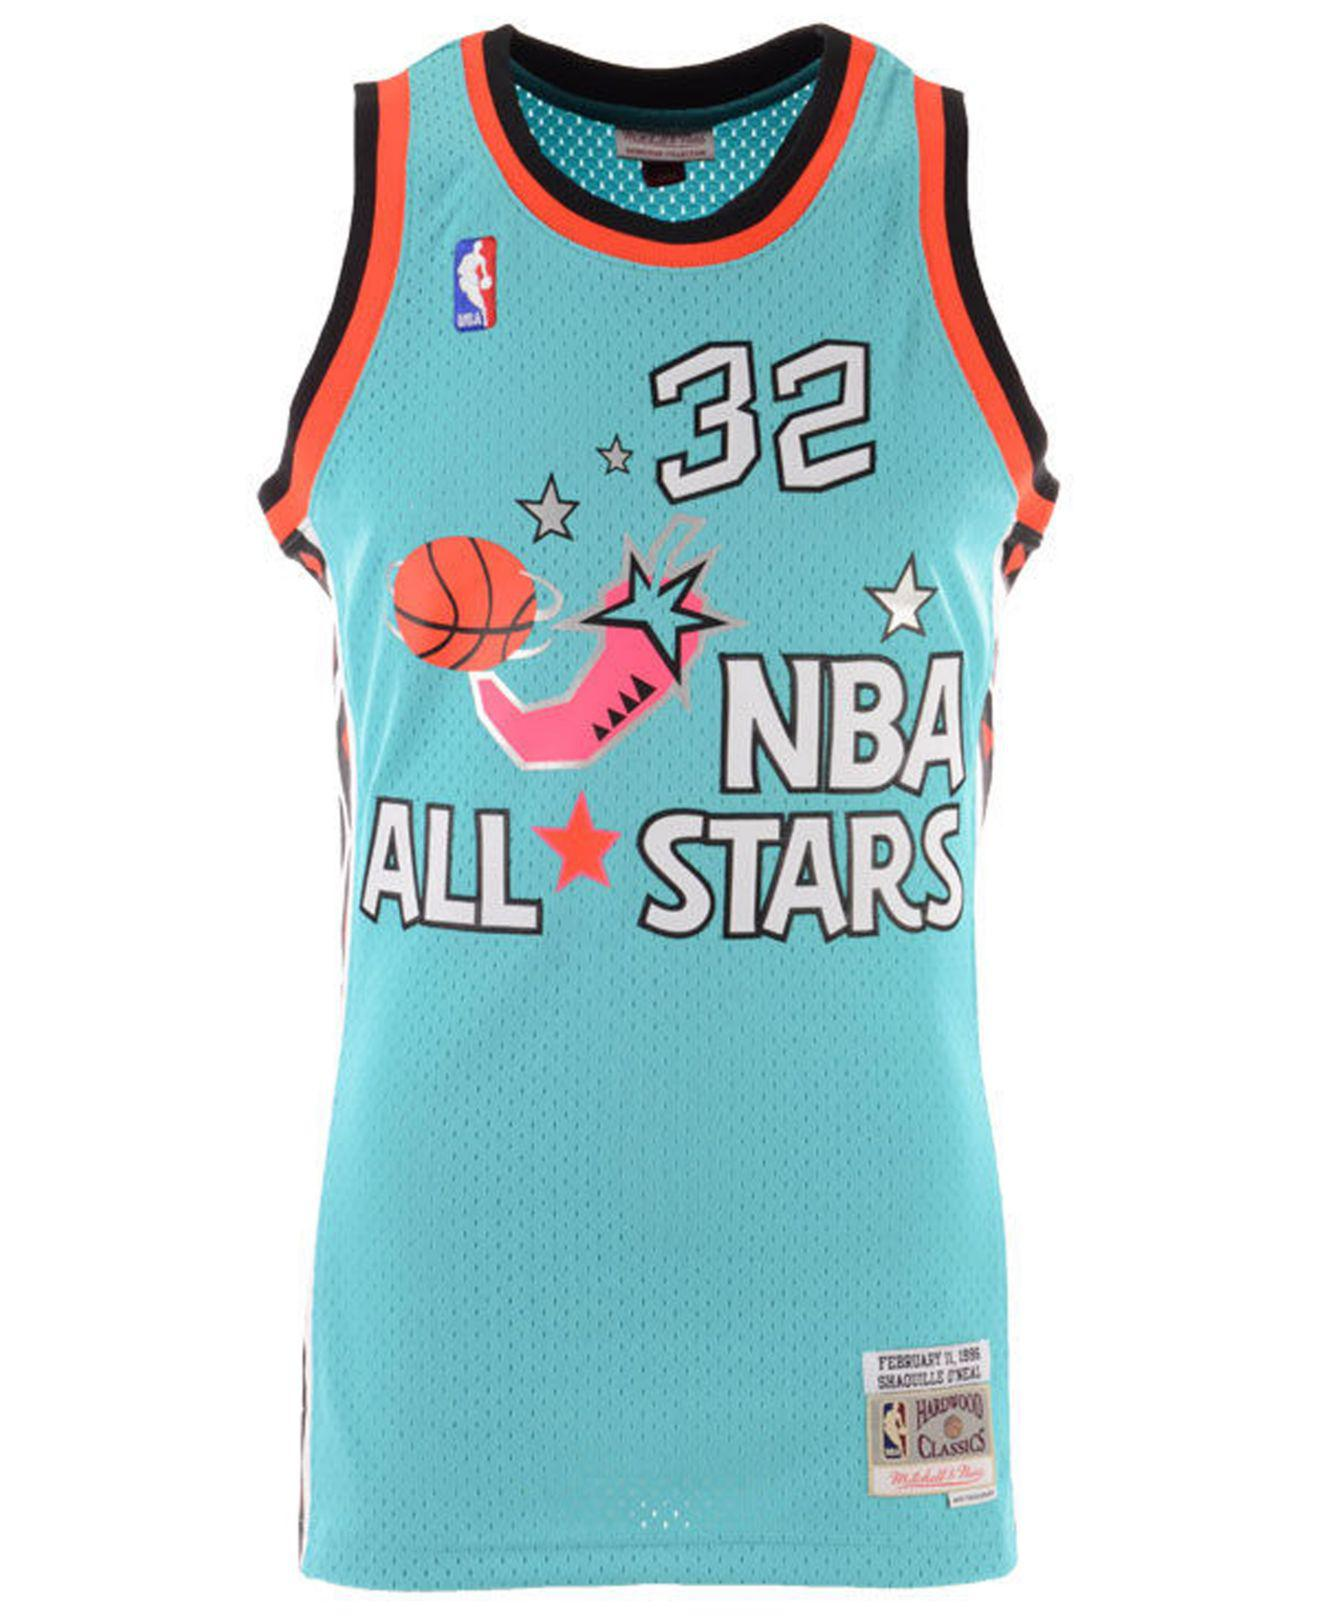 60100d4c228 Lyst - Mitchell & Ness Shaquille O'neal Nba All Star 1996 Swingman Jersey  in Blue for Men